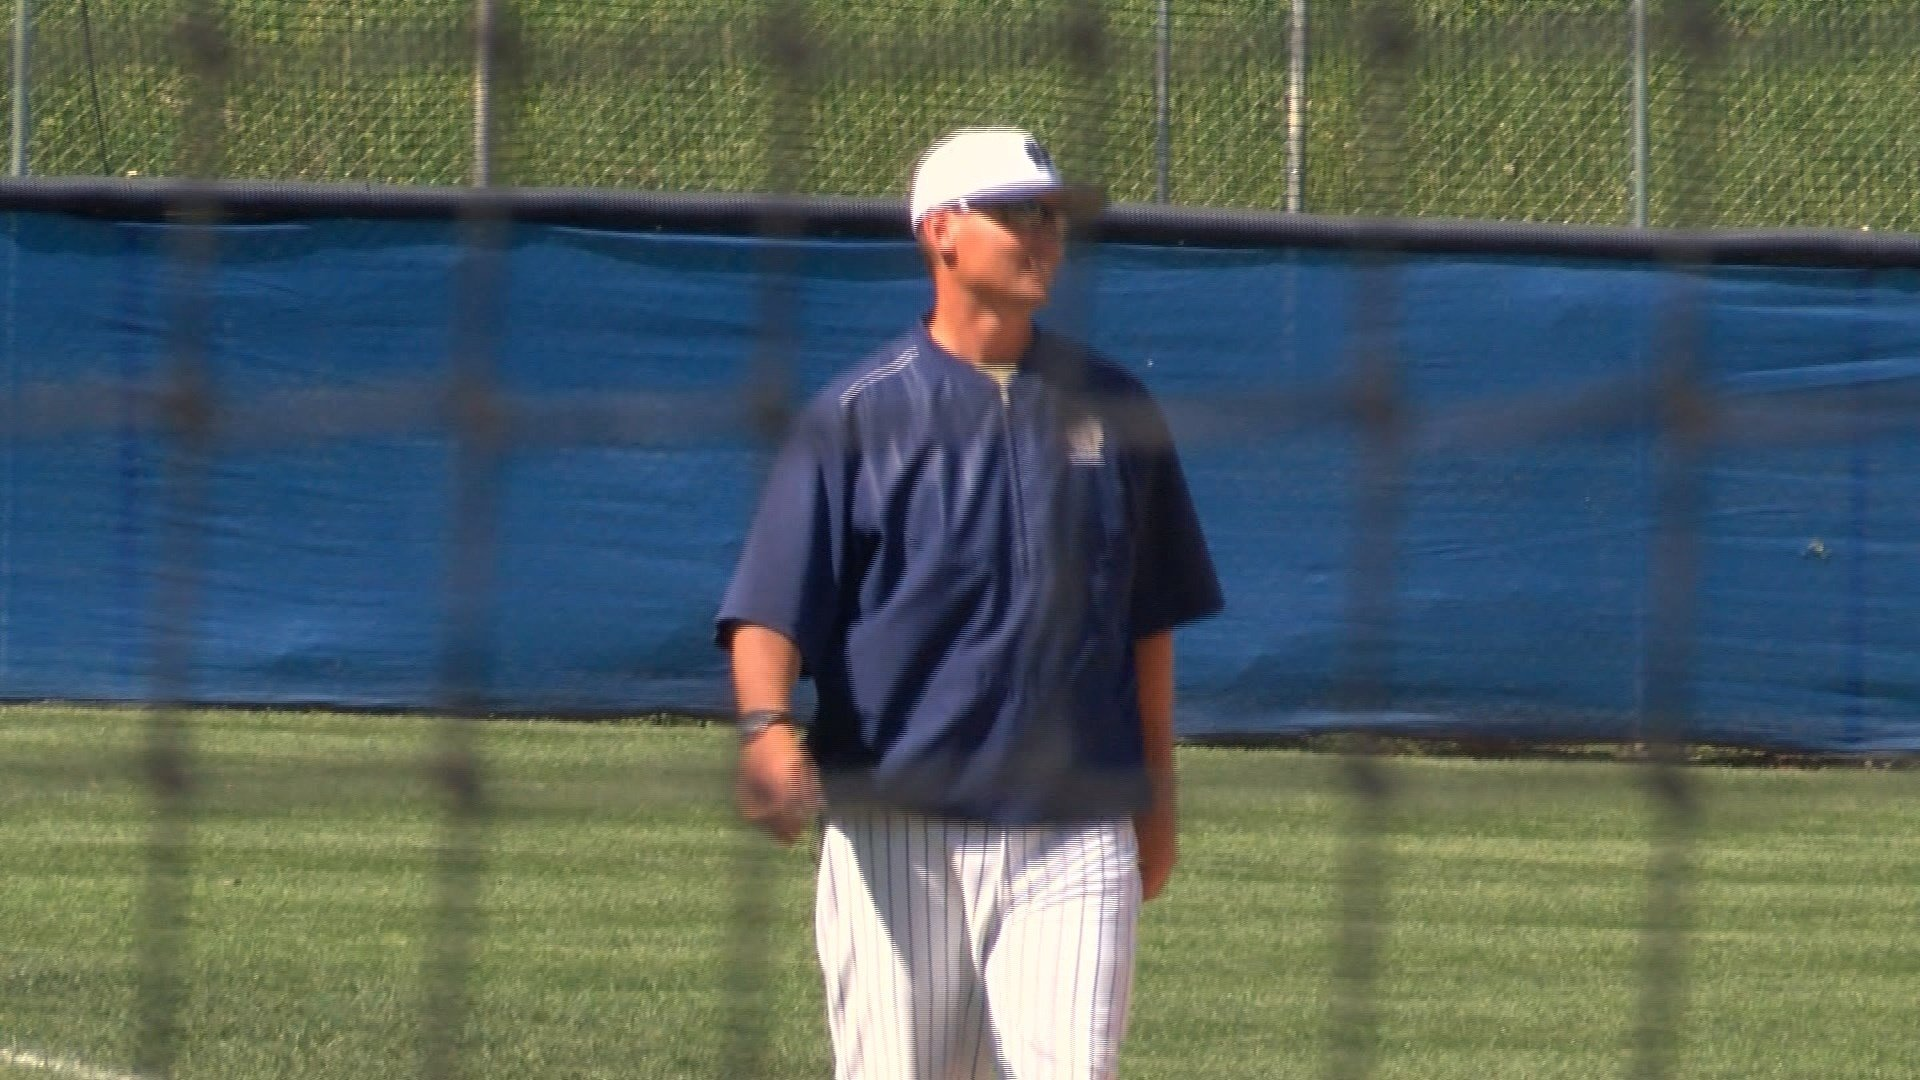 Bishop Heelan is ranked second in Class 3A, in the latest IHSBCA rankings.